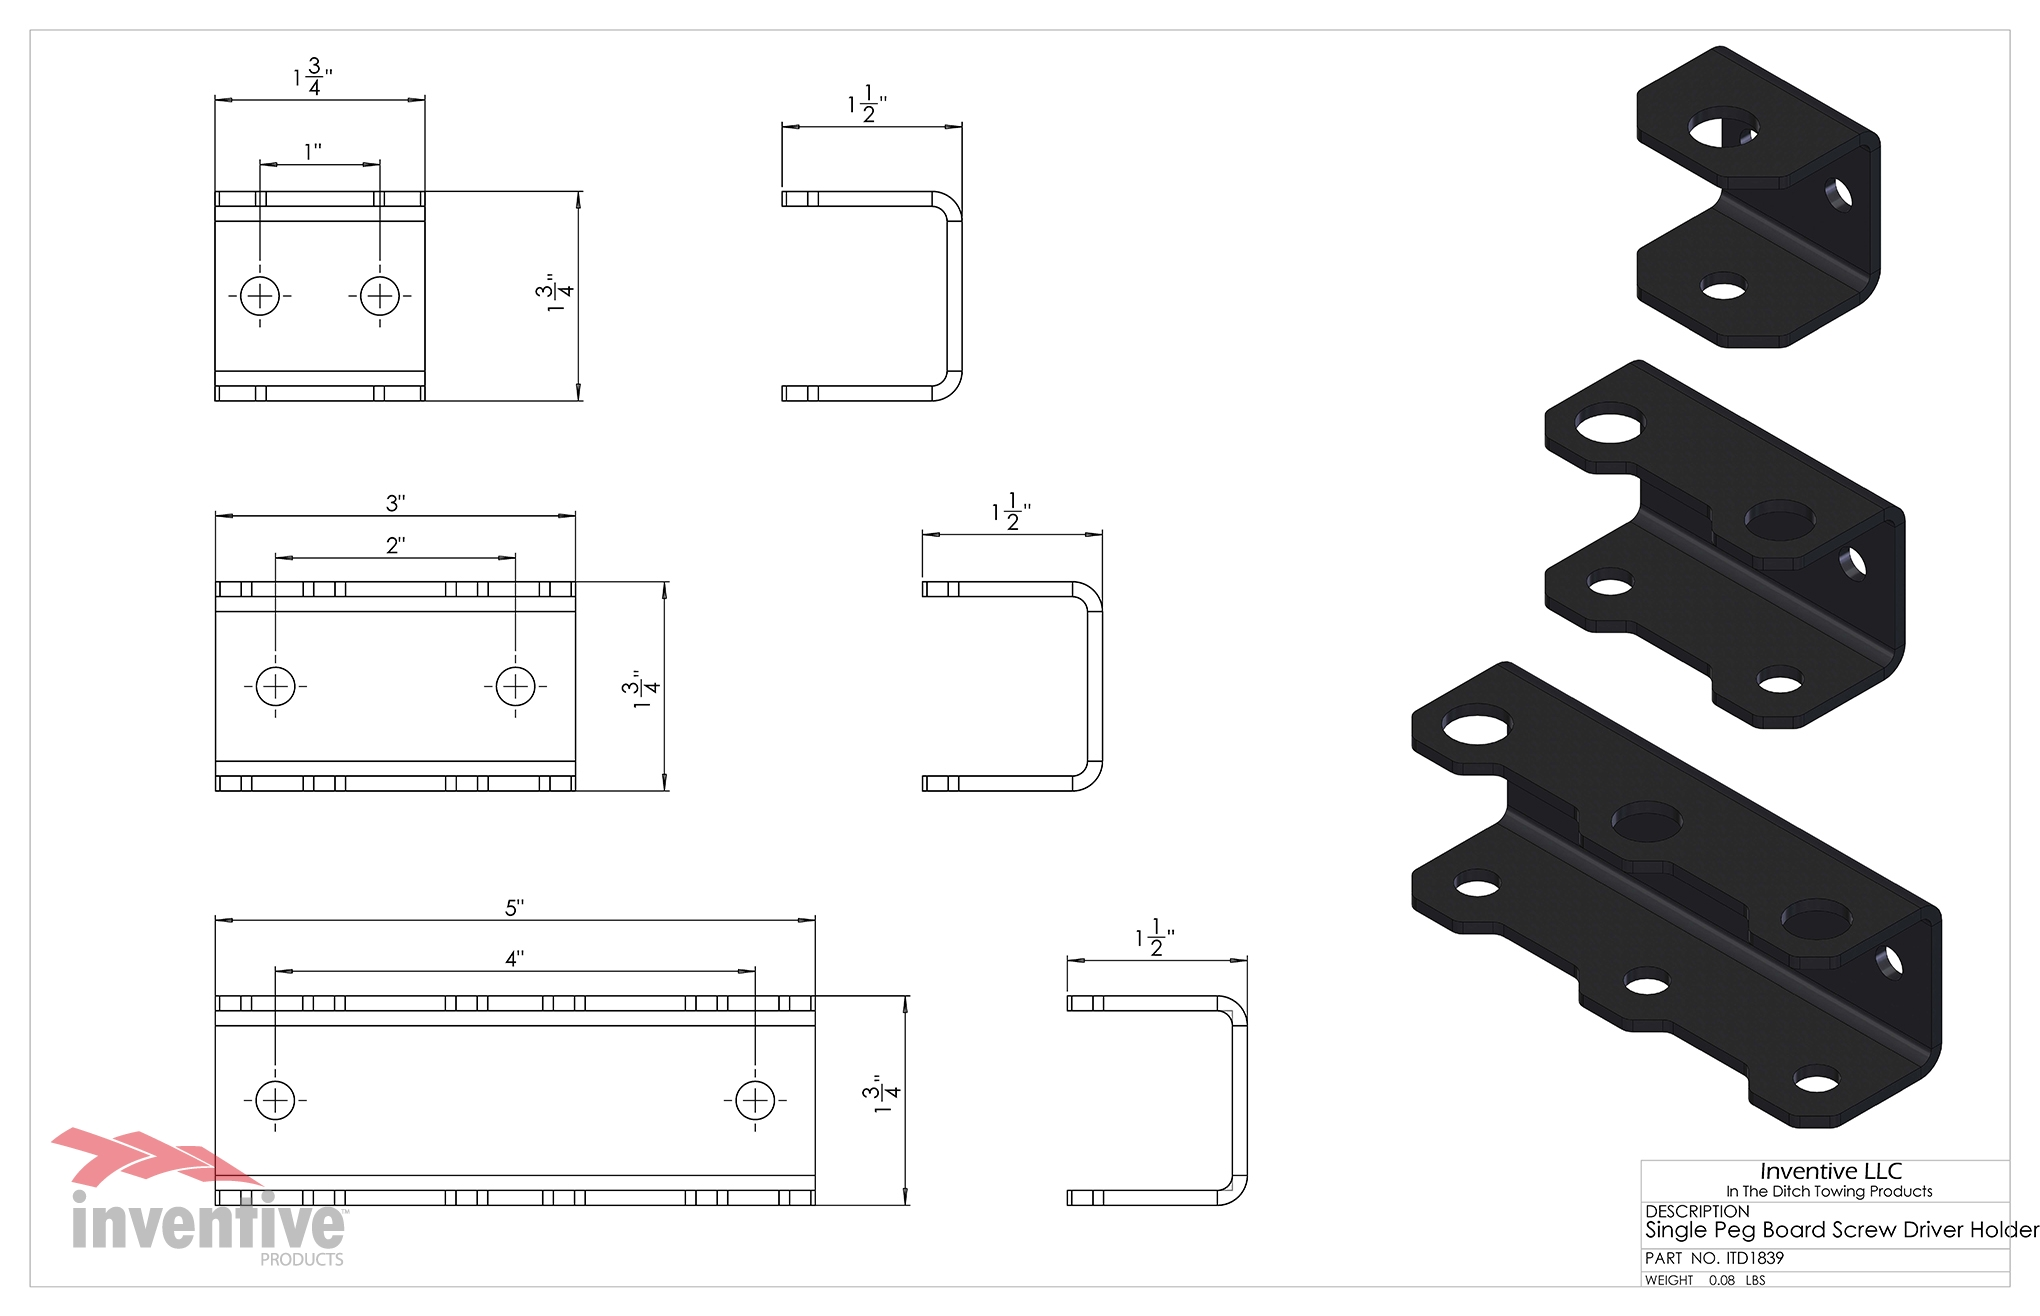 1840 Double Screw Driver Holder Dimensions